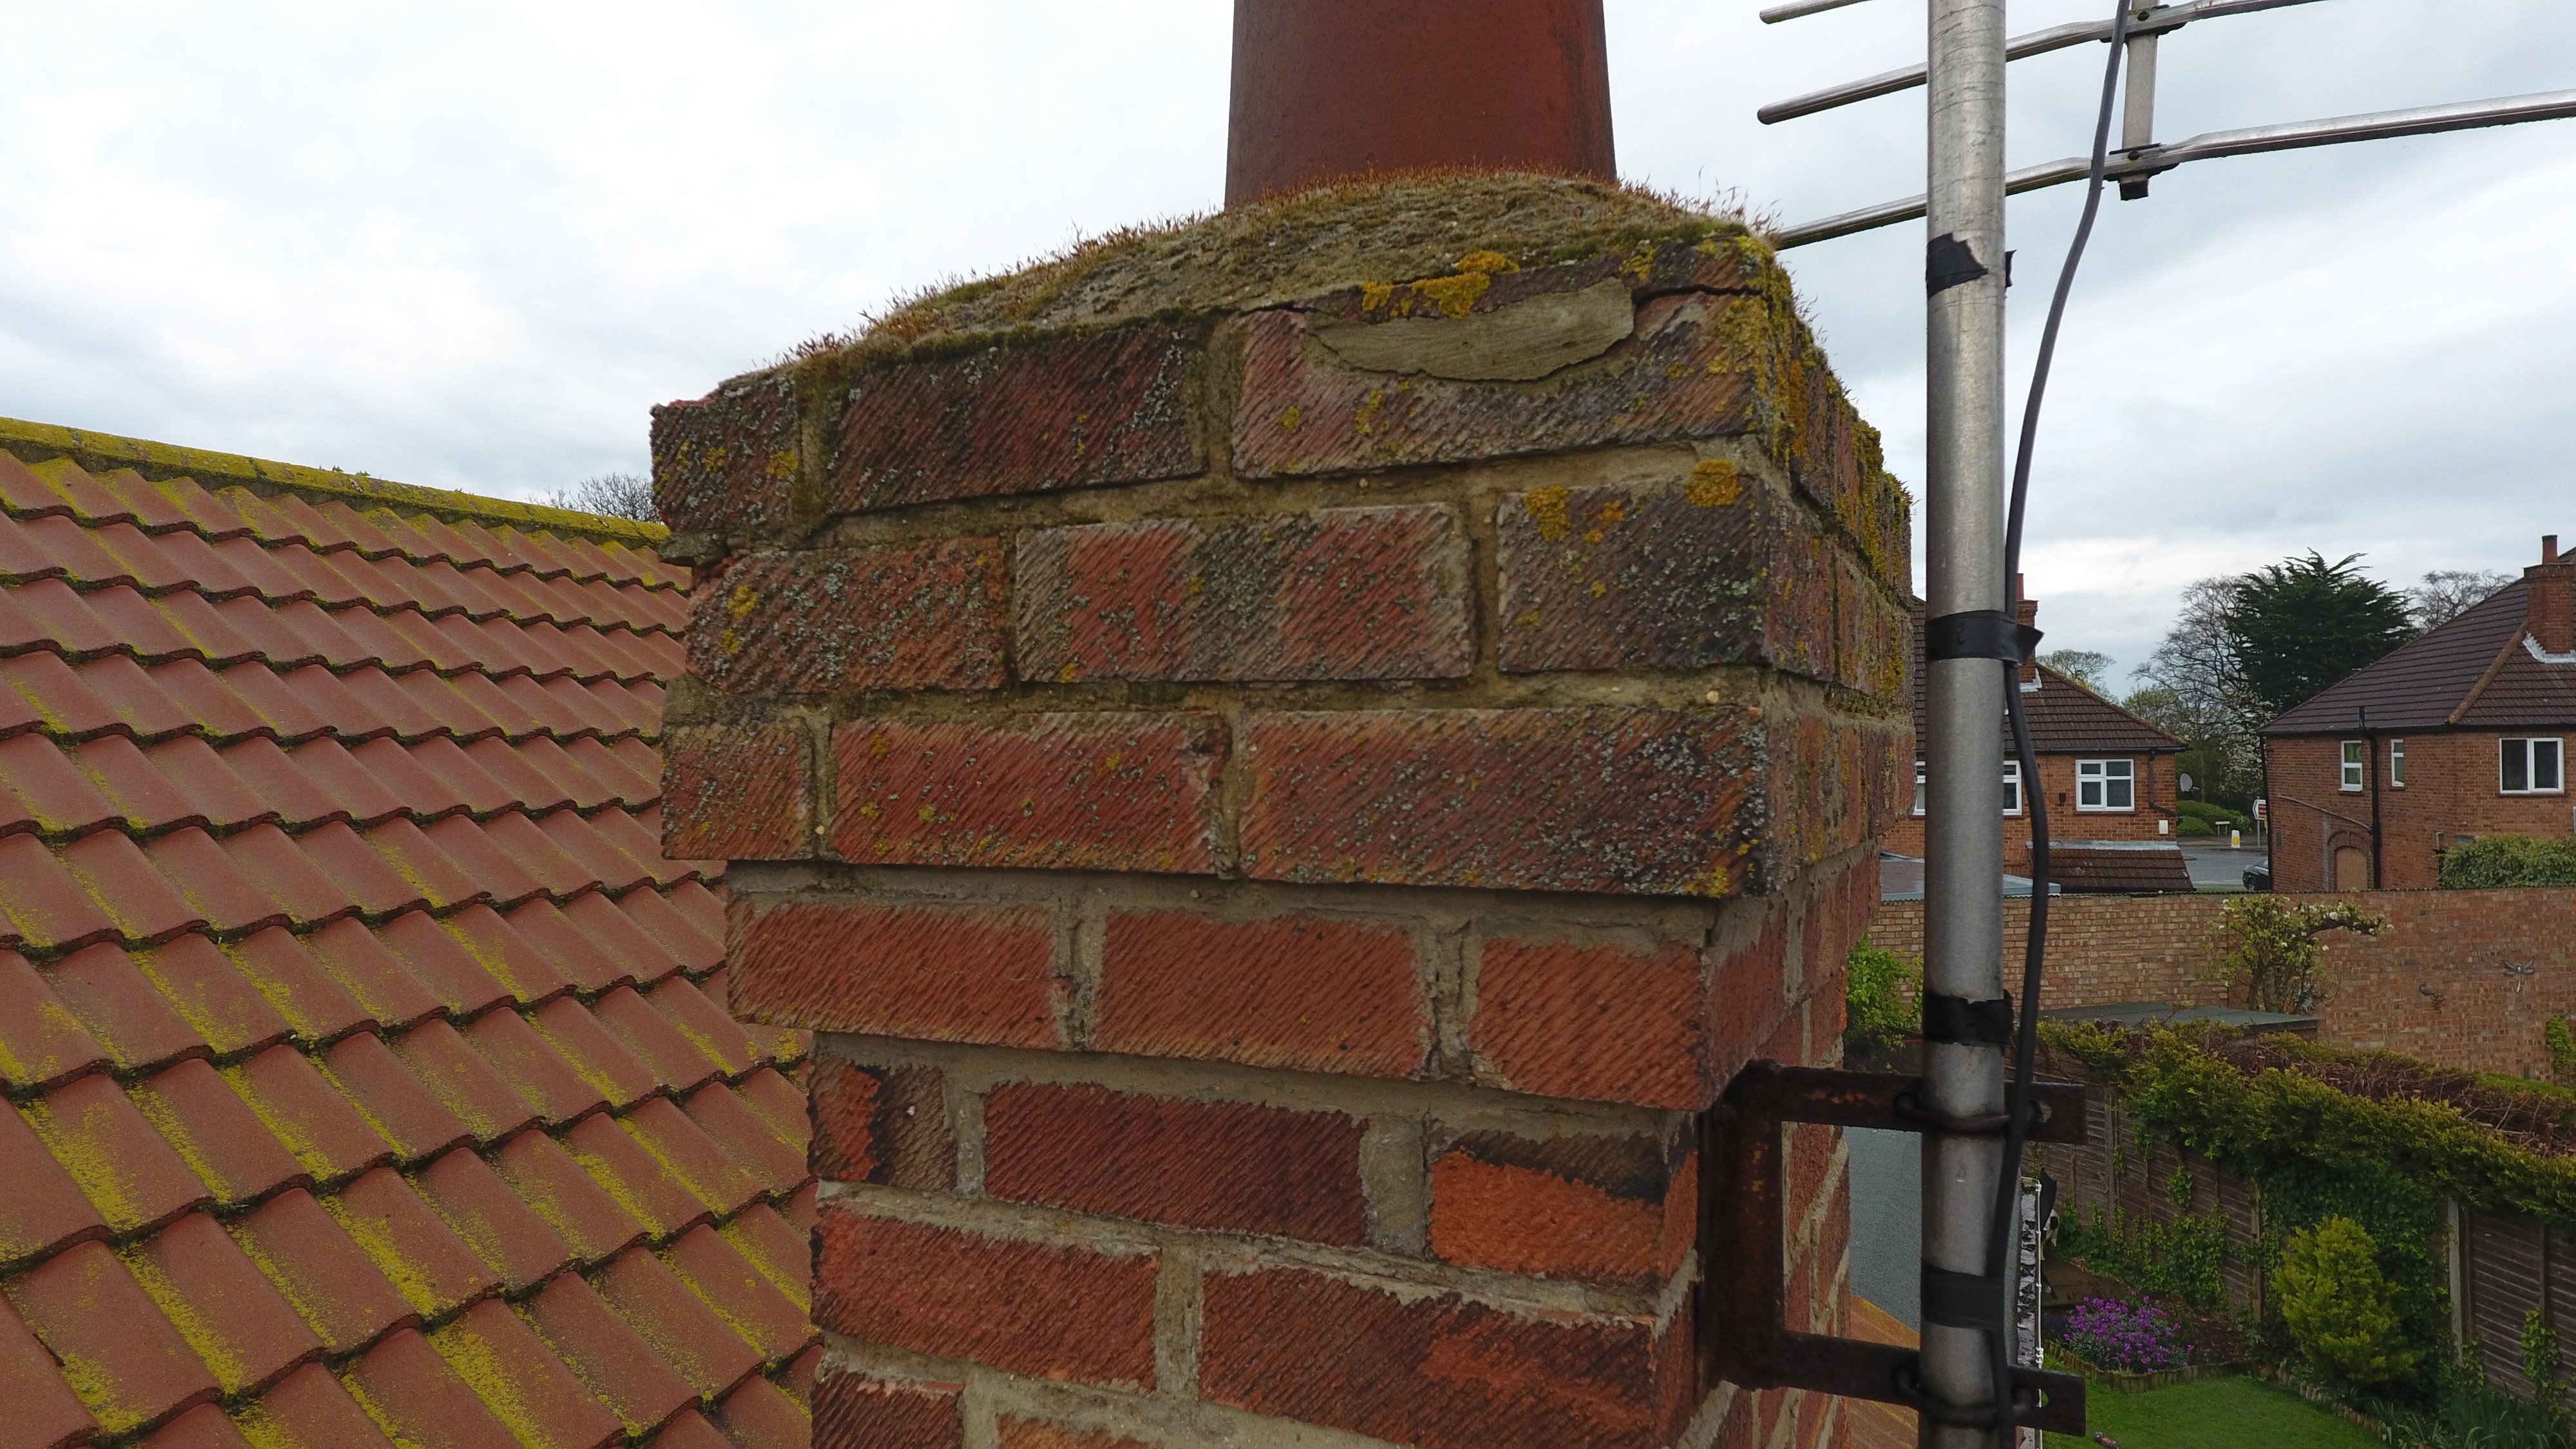 Pegasus Drone Media aerial videography and photography of chimney stack